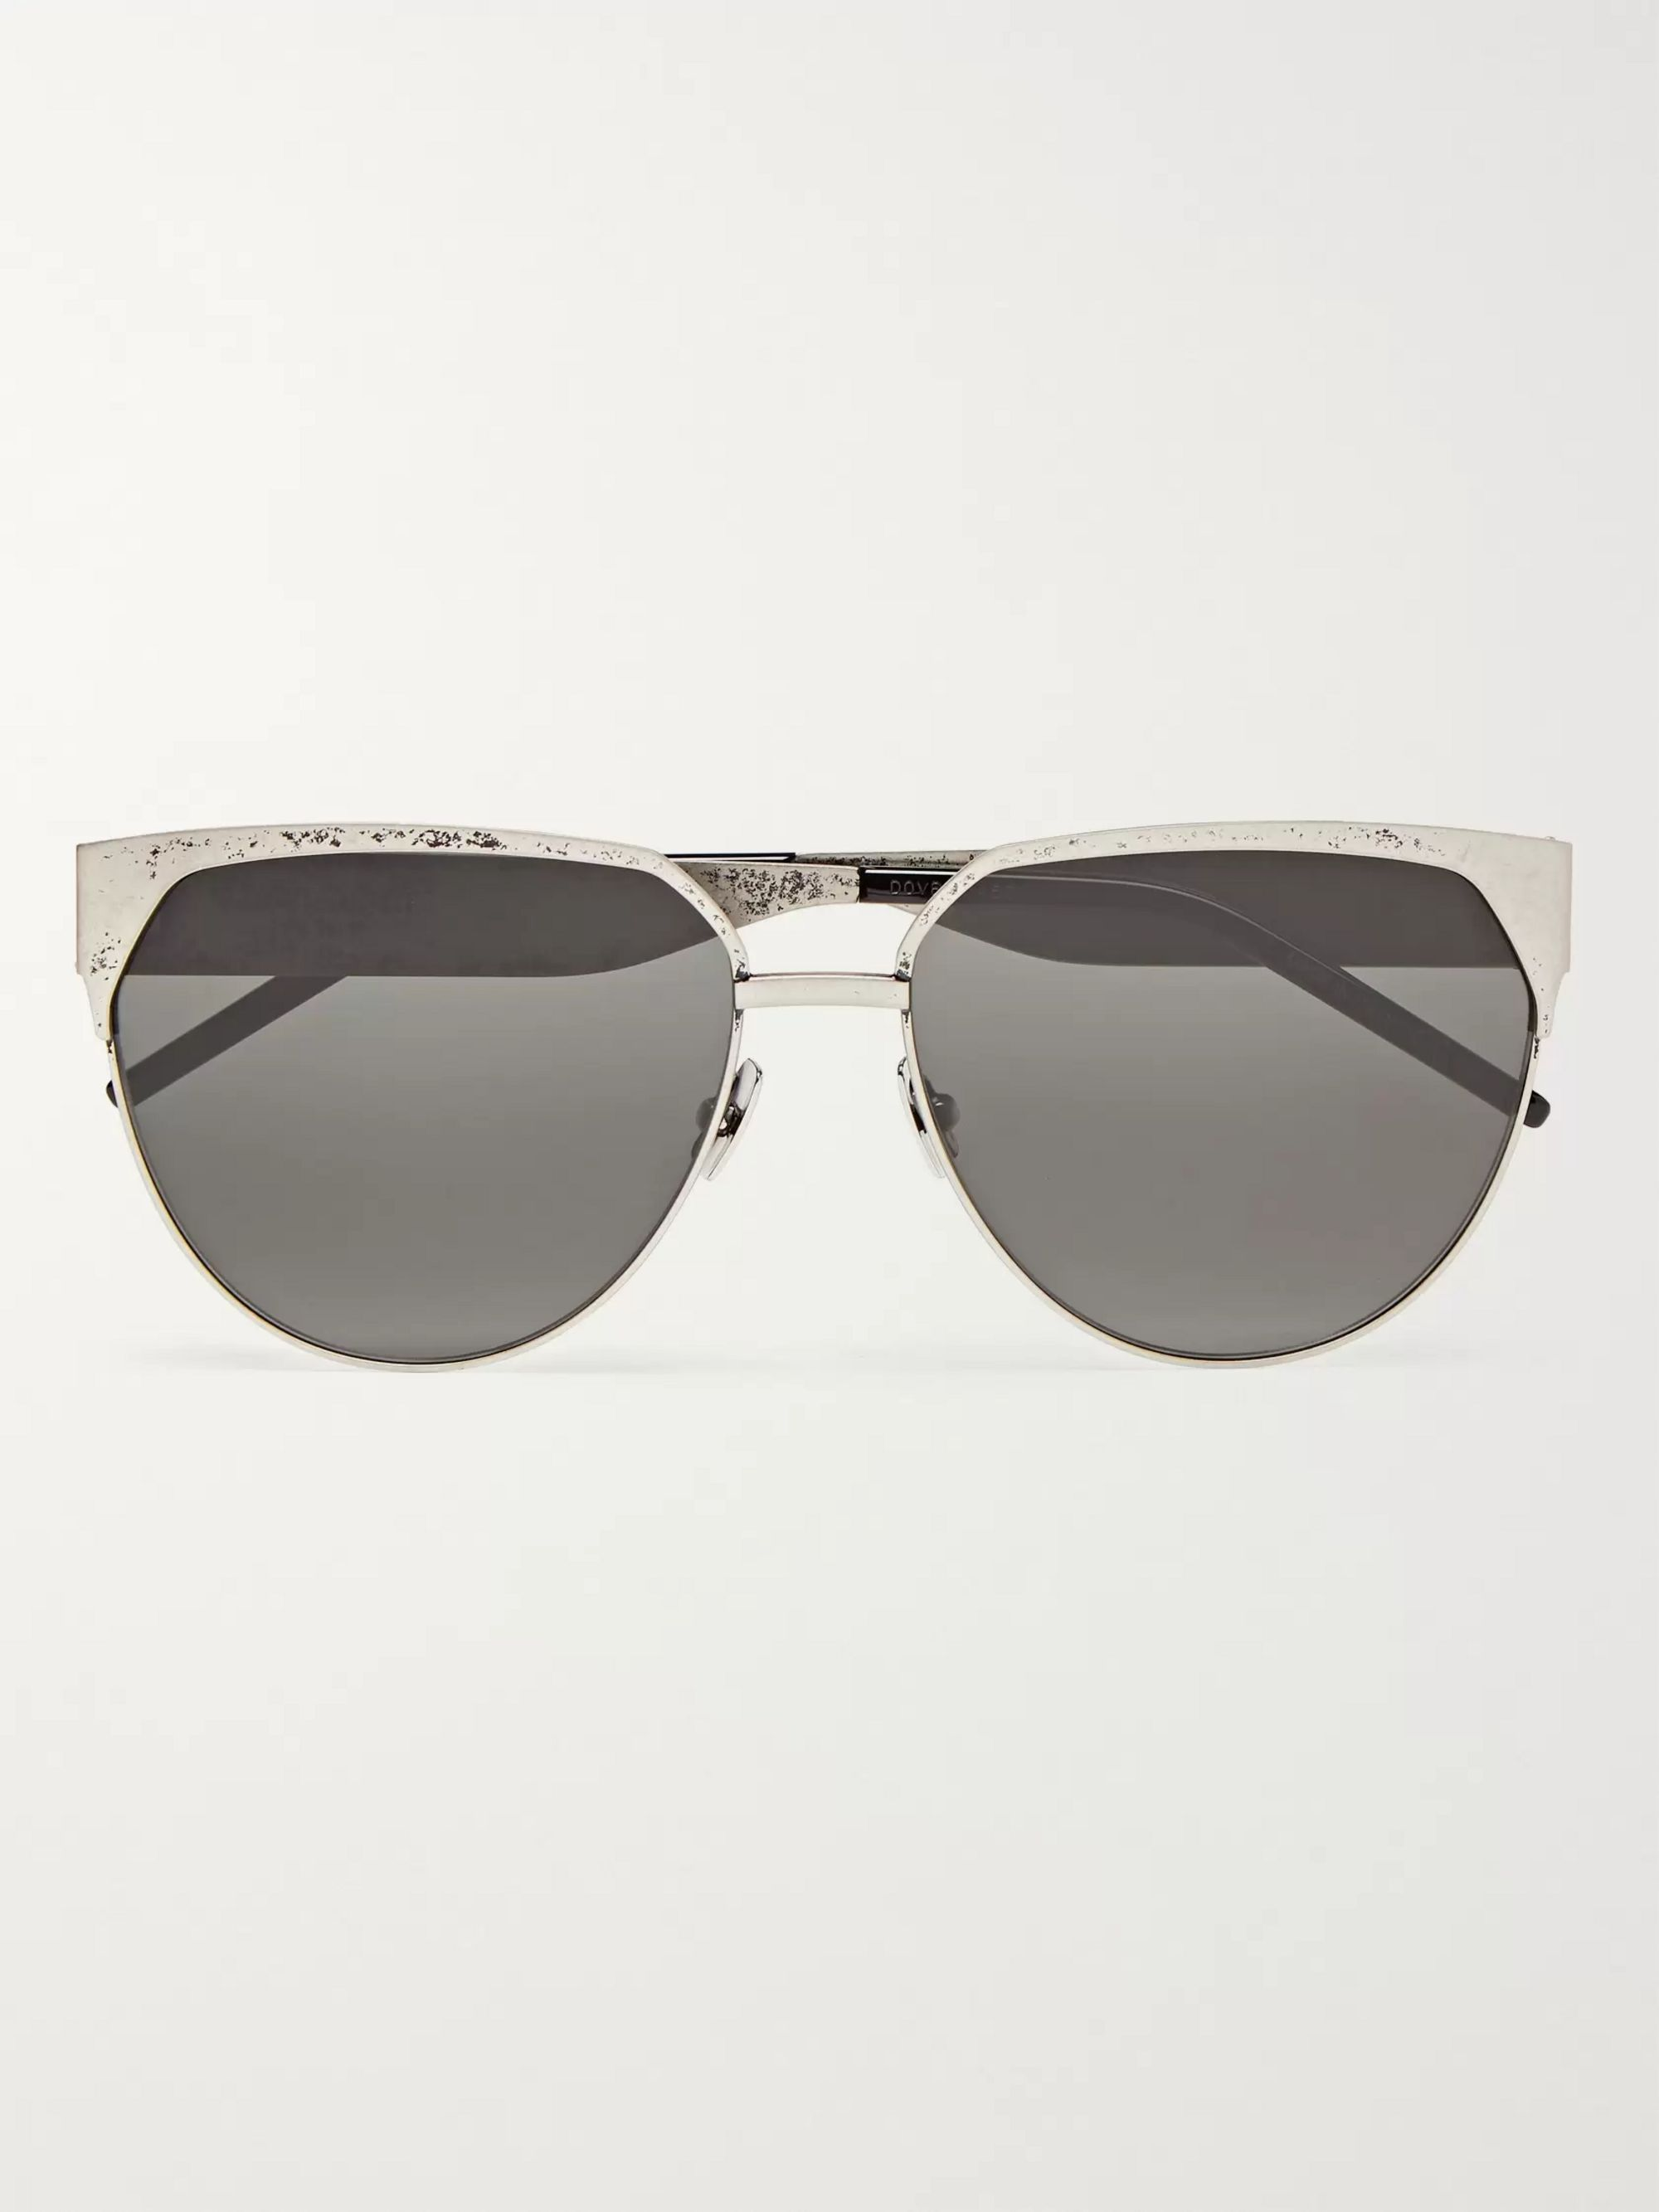 SAINT LAURENT D-Frame Silver-Tone Sunglasses